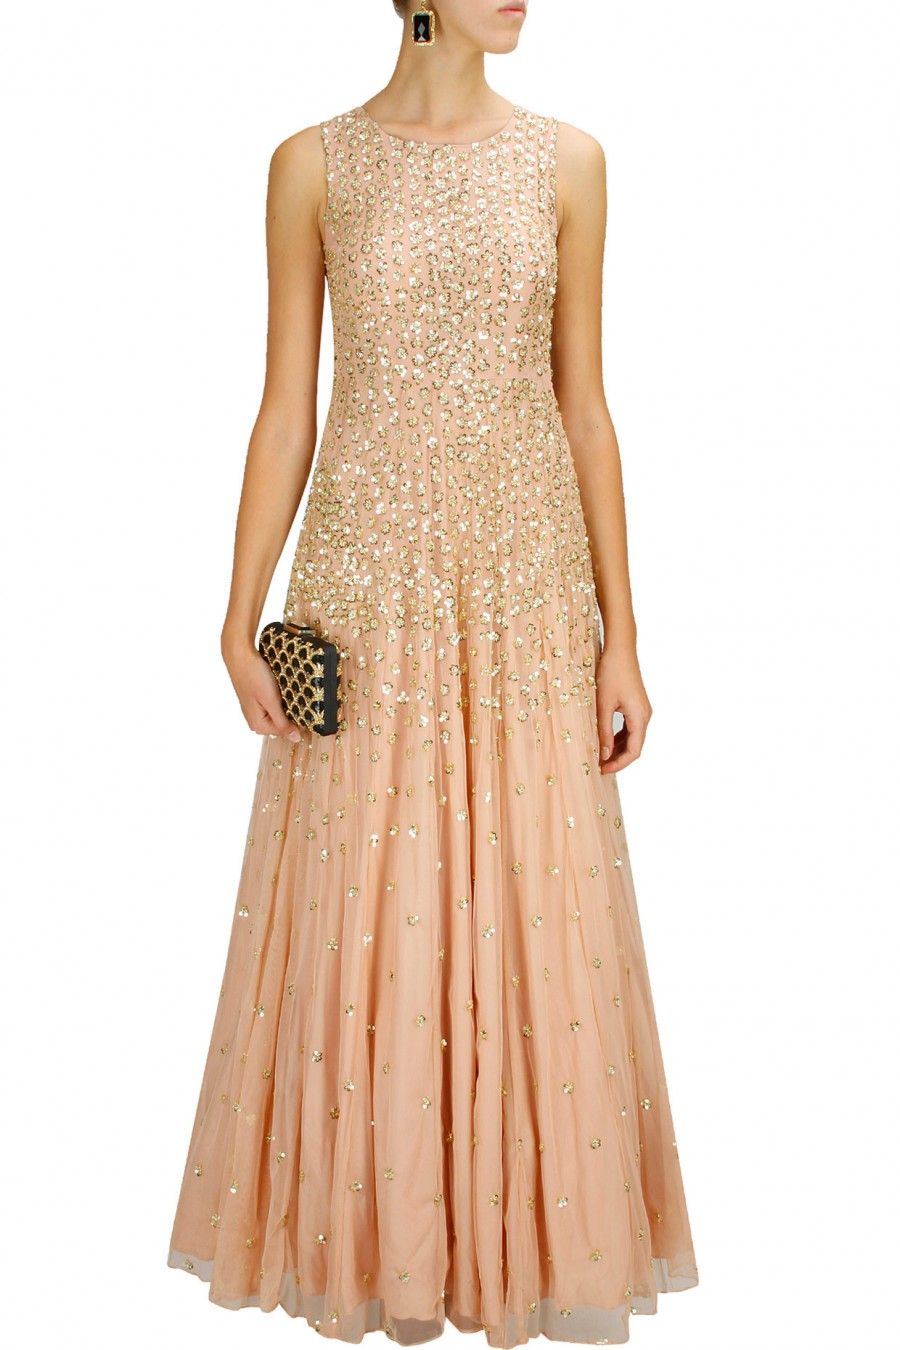 Maxi dresses to wear to a wedding  INTRODUCING  Peach sequins embellished gown by Astha Narang Shop